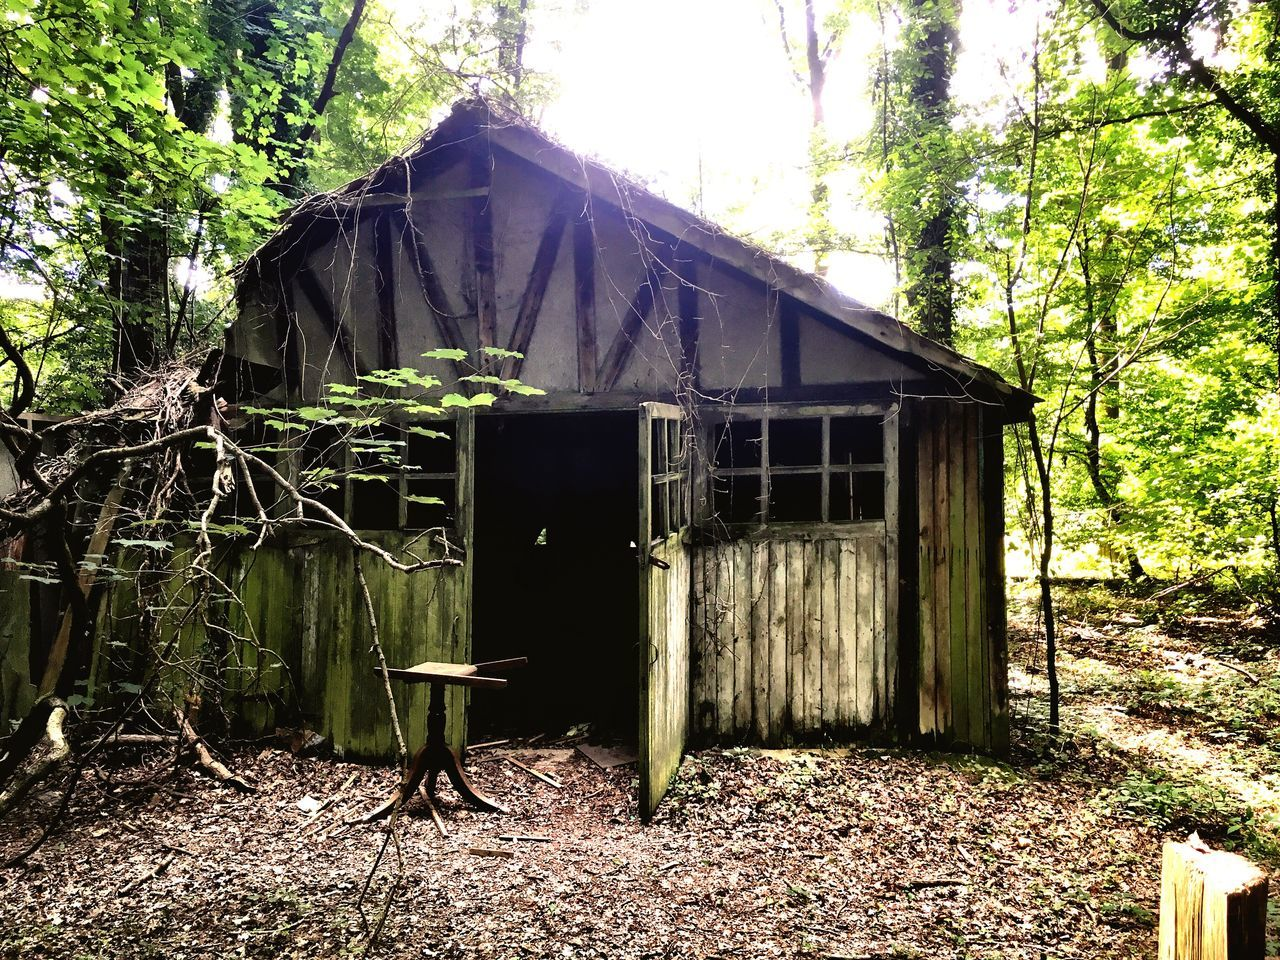 The House In The Woods Shack Derelict Woods Bleack Built Structure Building Exterior House Old Forest Messy Discarded Outdoors Cottage Rural Scene Tranquility Wooden House